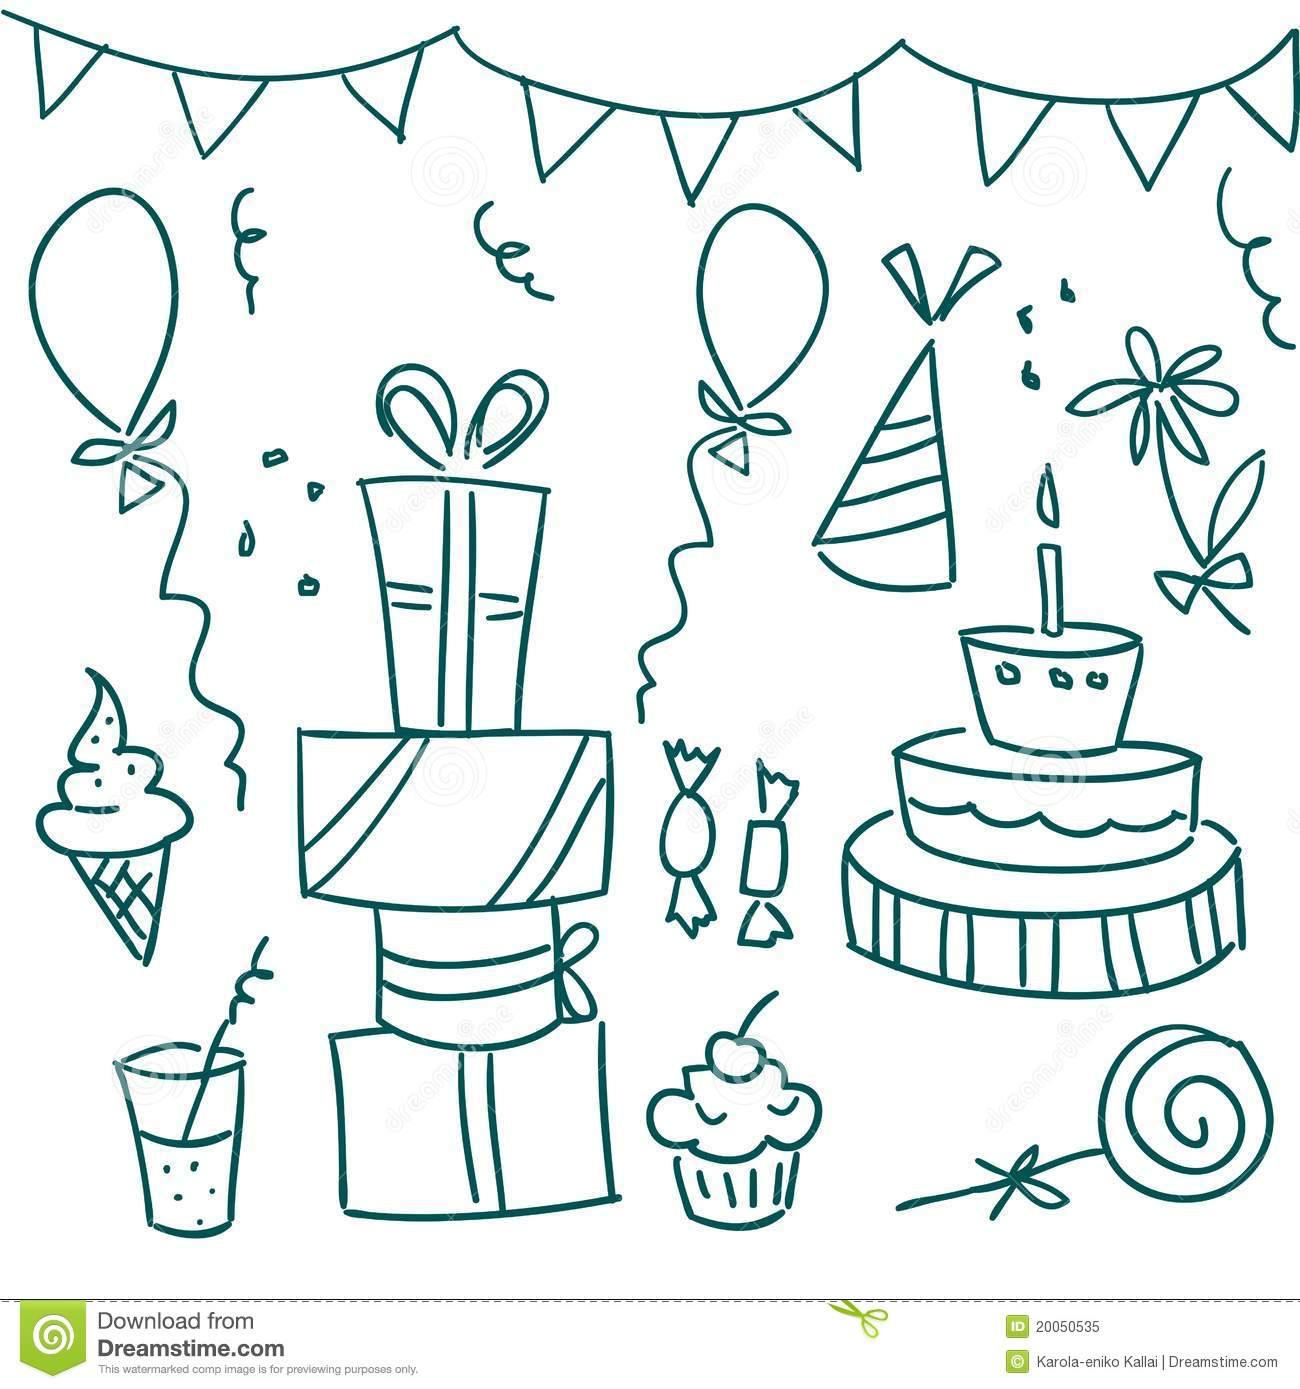 birthday party doodles stock vector illustration of Black and Whiteclipart Cupcake Free Download Cute Cupcake Clip Art